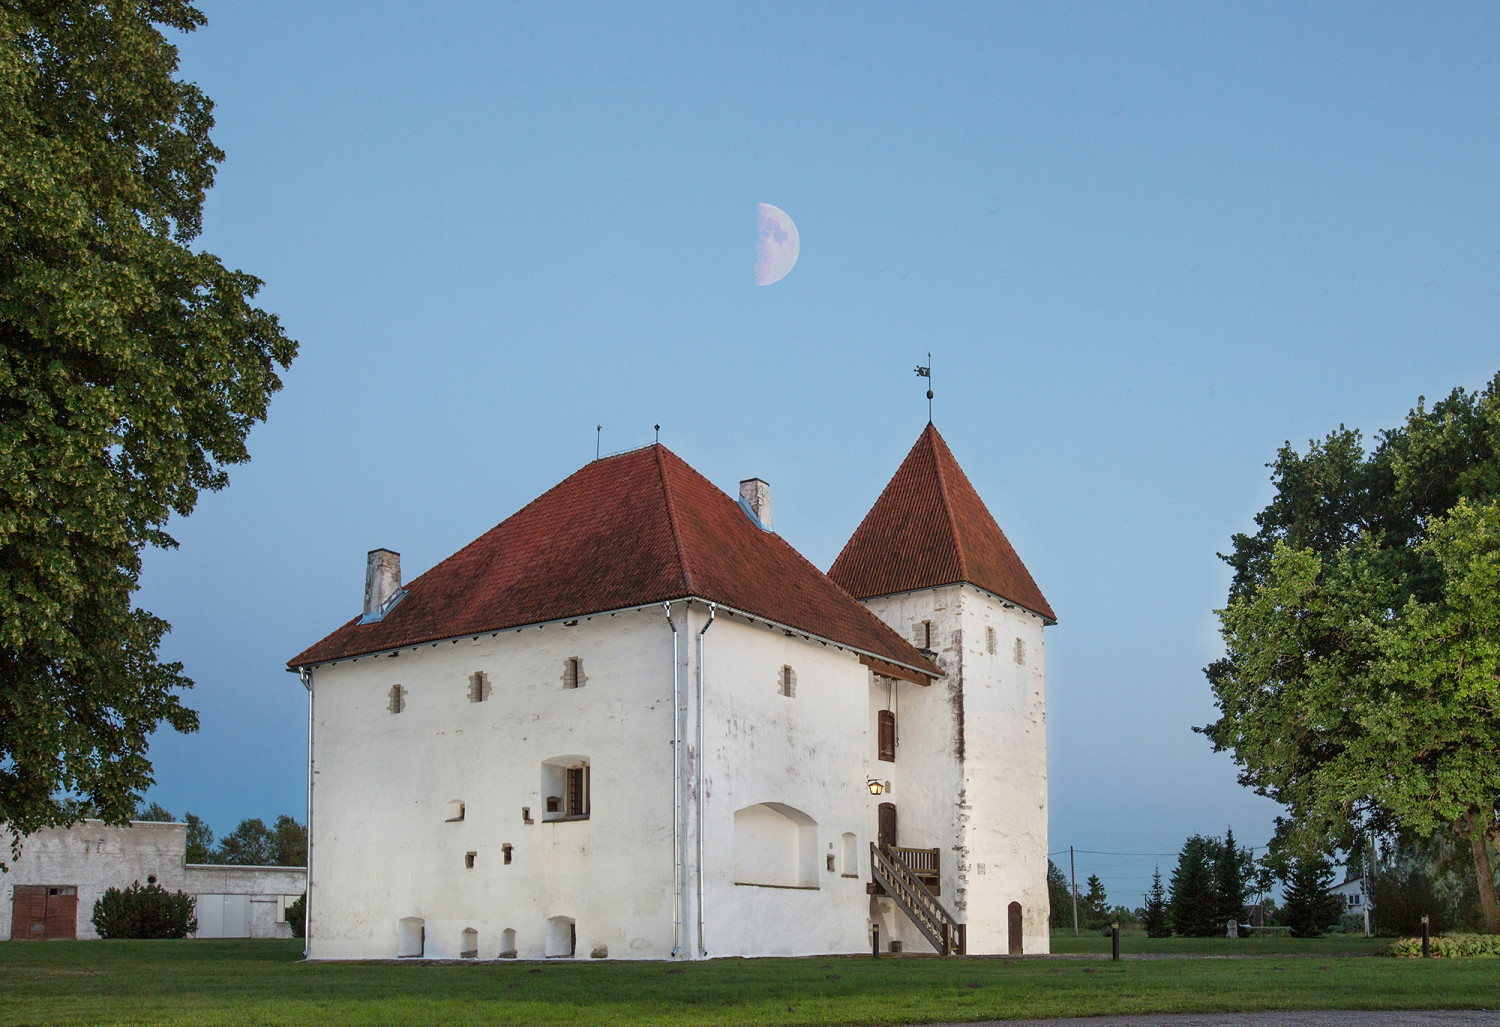 Purtse castle – sightseeing, good food stop and brewery